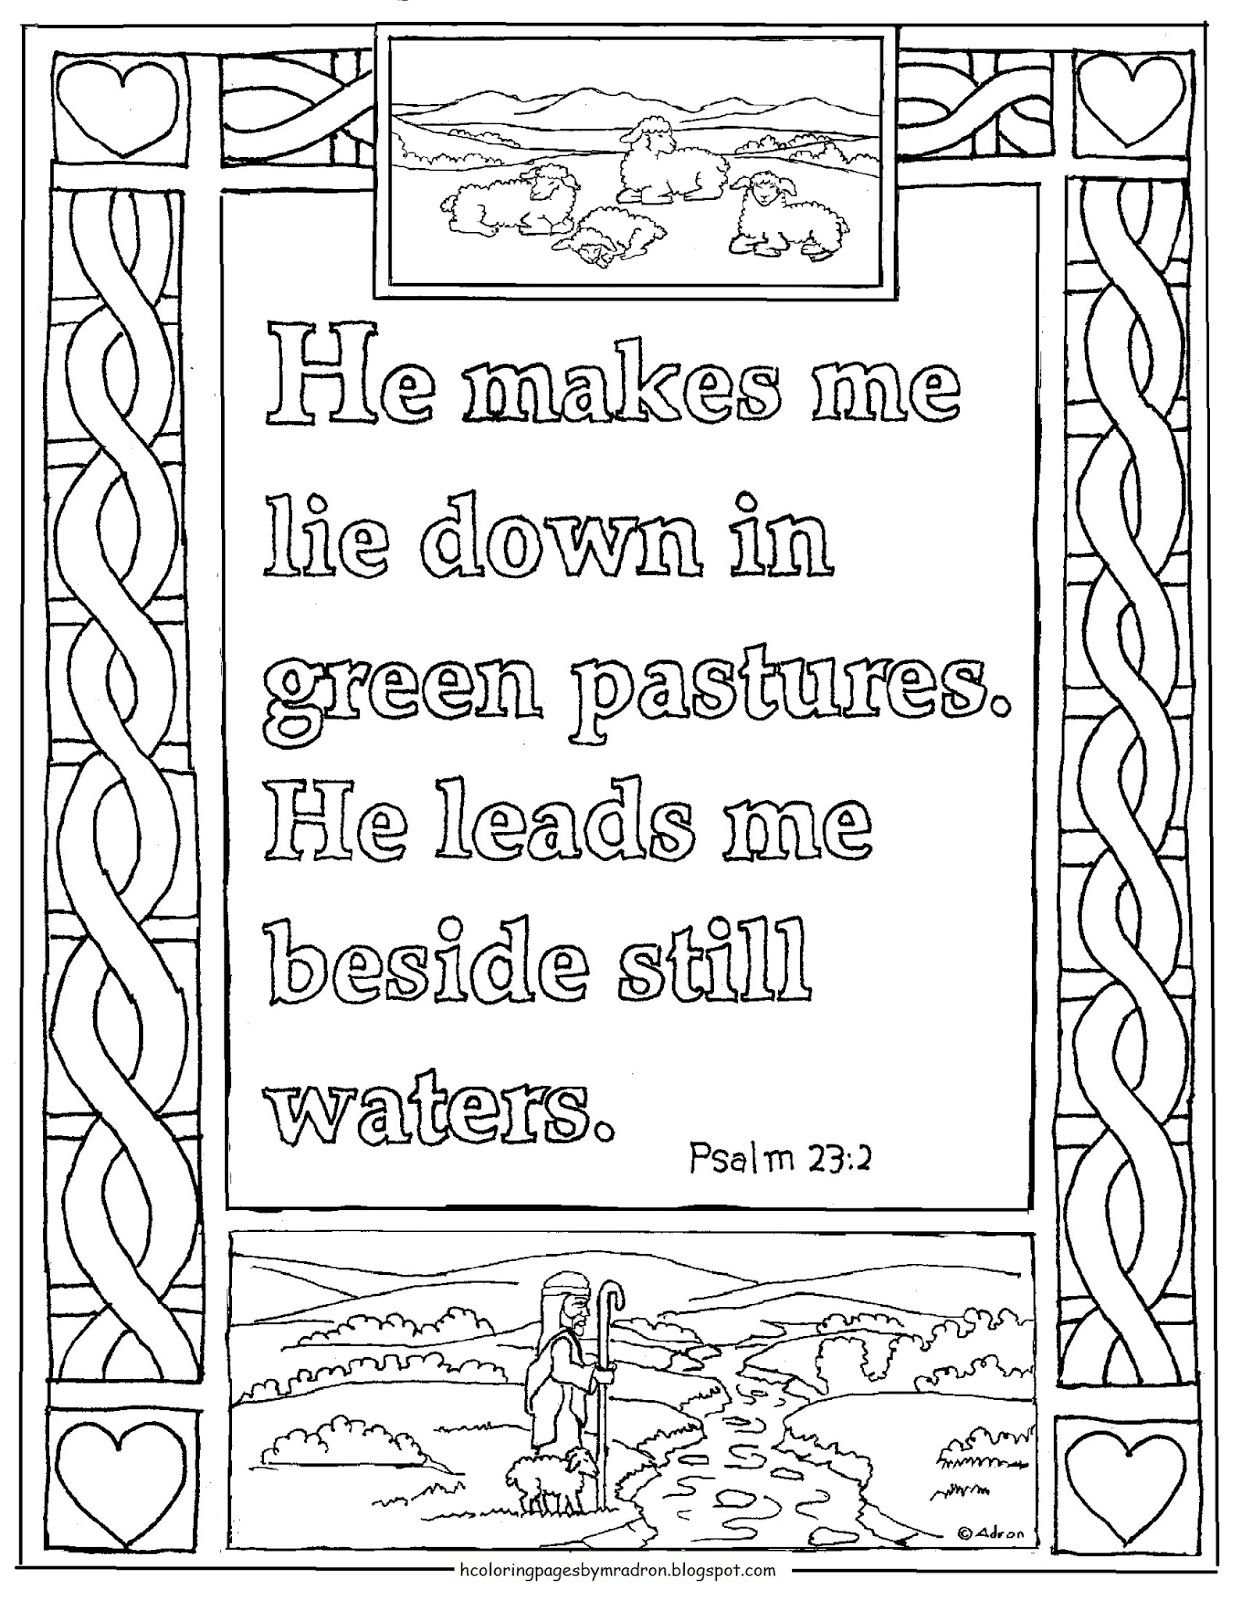 Free Printable Psalm 23 Booklet For The Child To